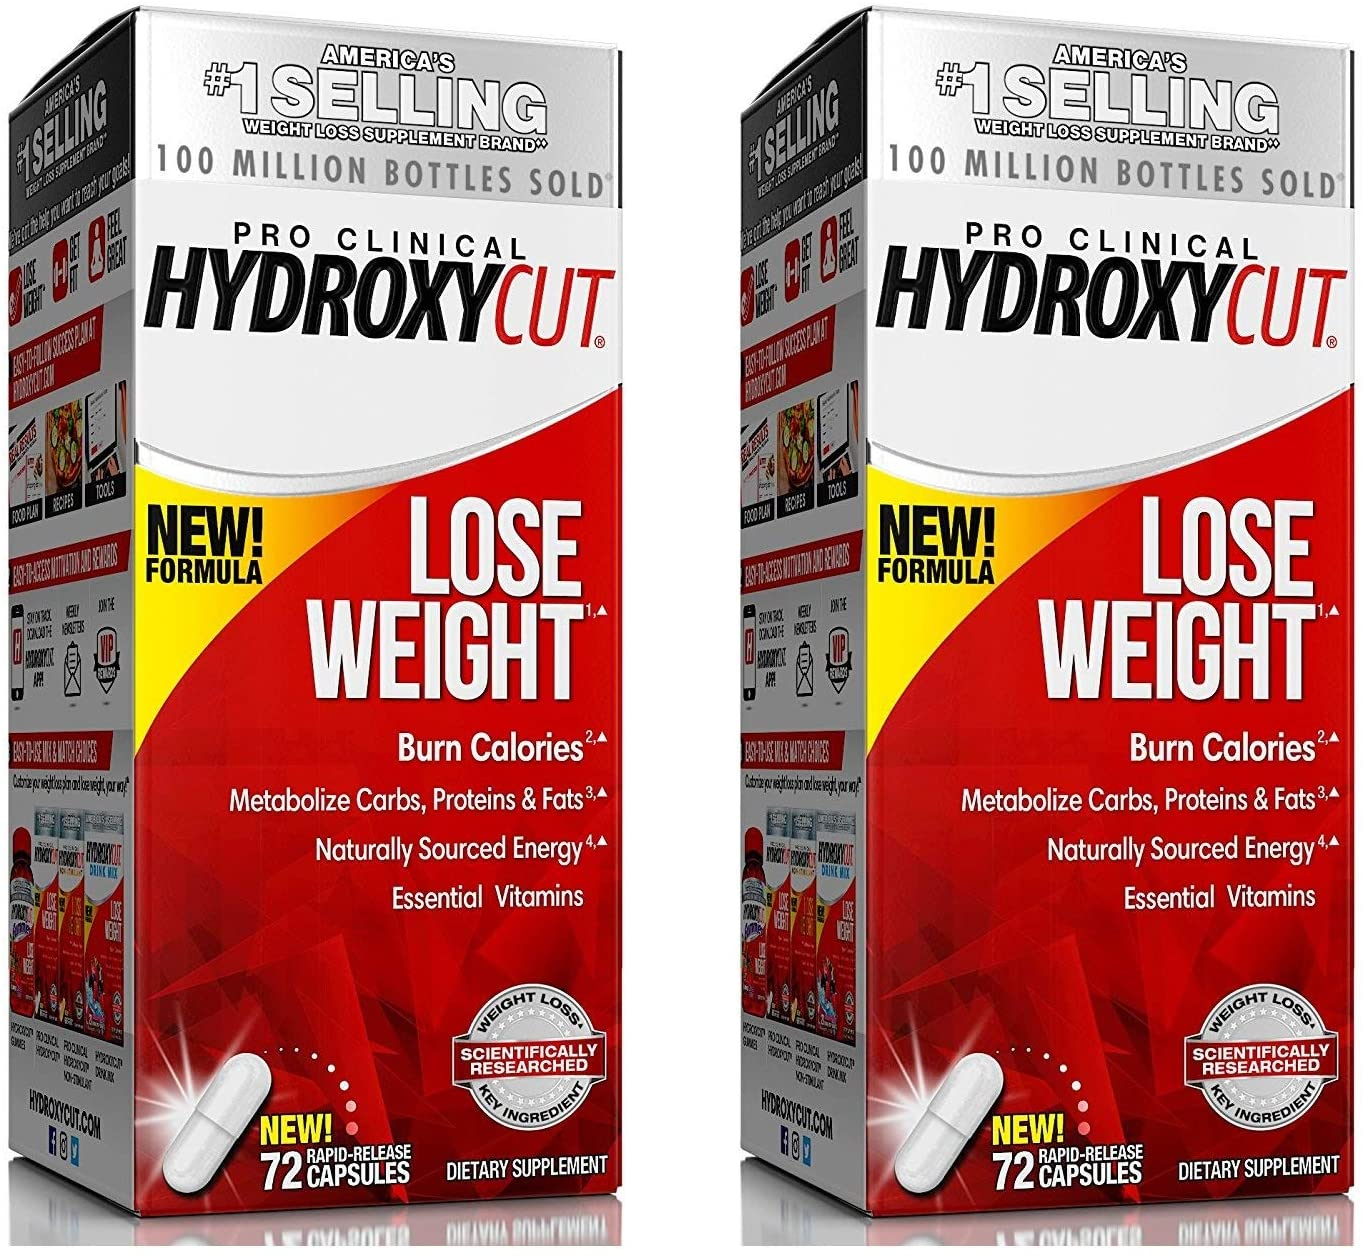 Pro Clinical Hydroxycut has become the best solution for your fat burning